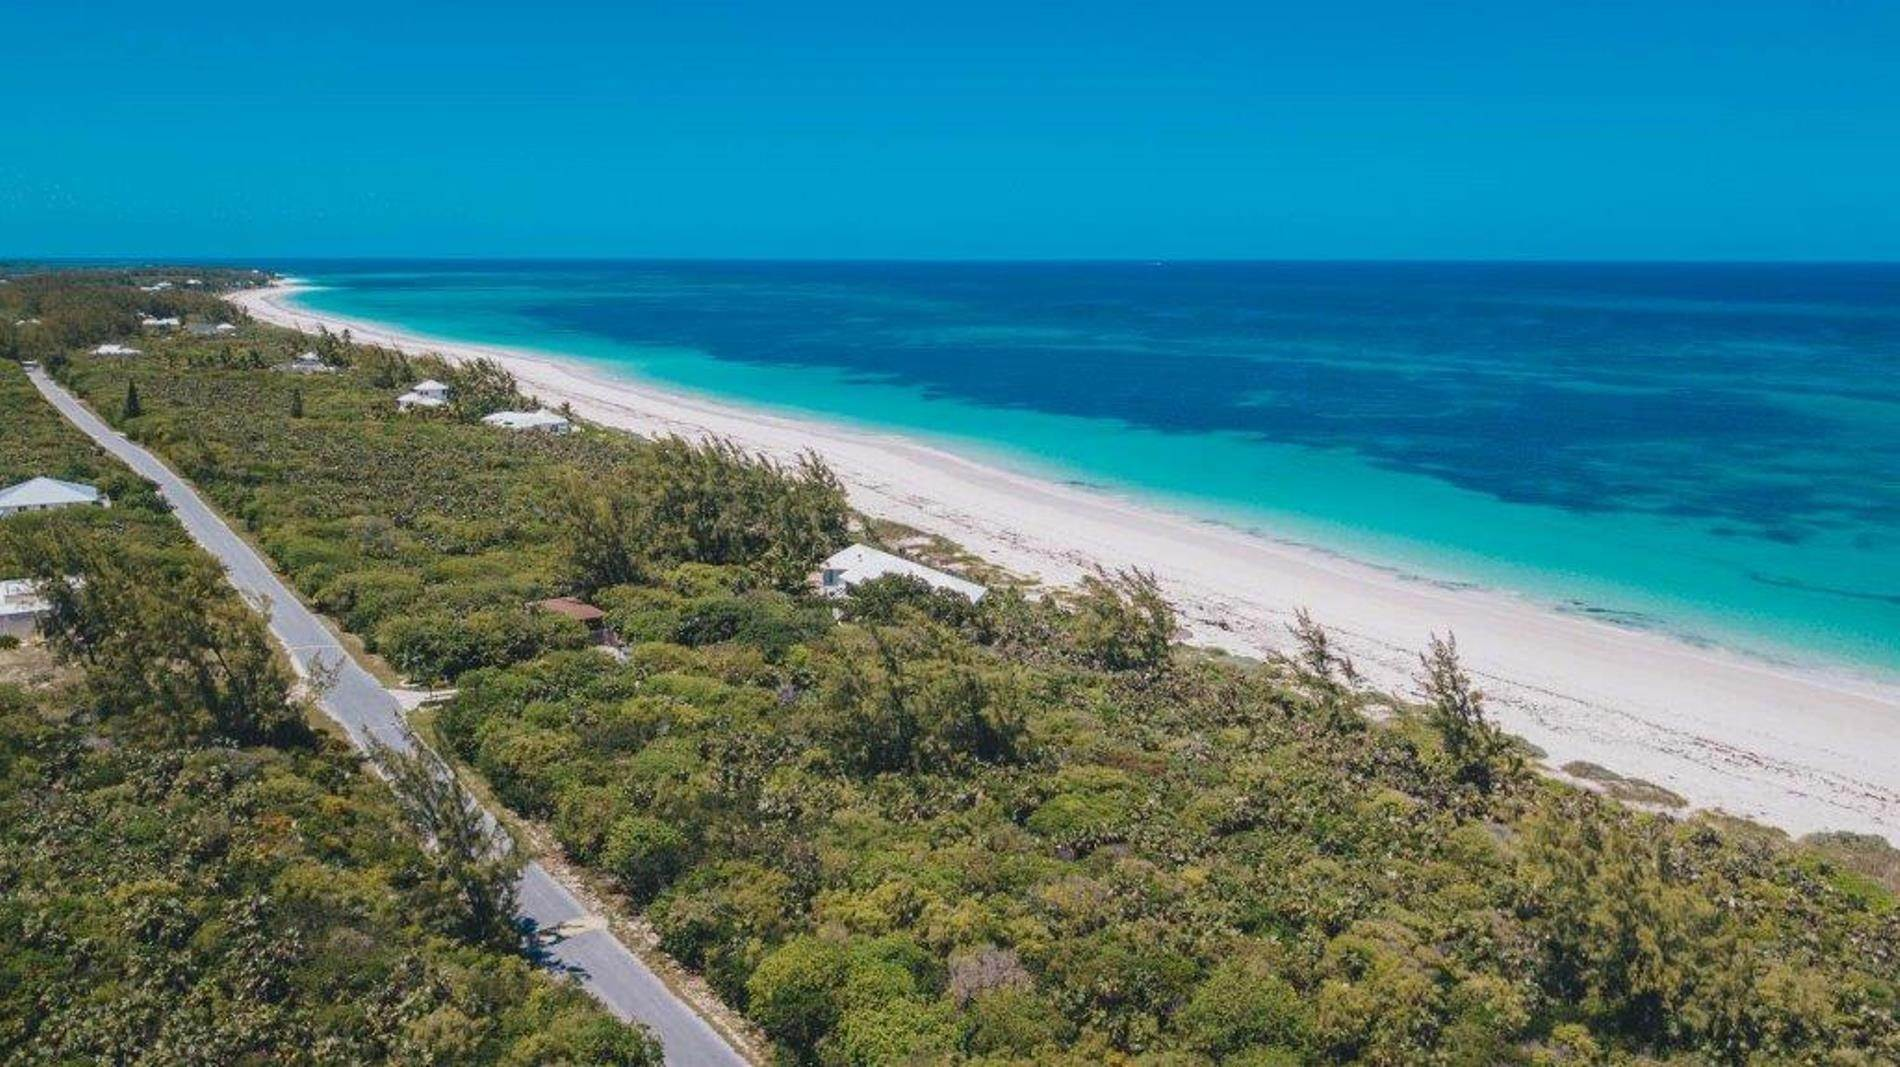 11. Terreno por un Venta en Unique Beach front Homesite at Windermere Beach Estates - Section A, Lot 9 and 126 - MLS 38497 Windermere Island, Eleuthera, Bahamas